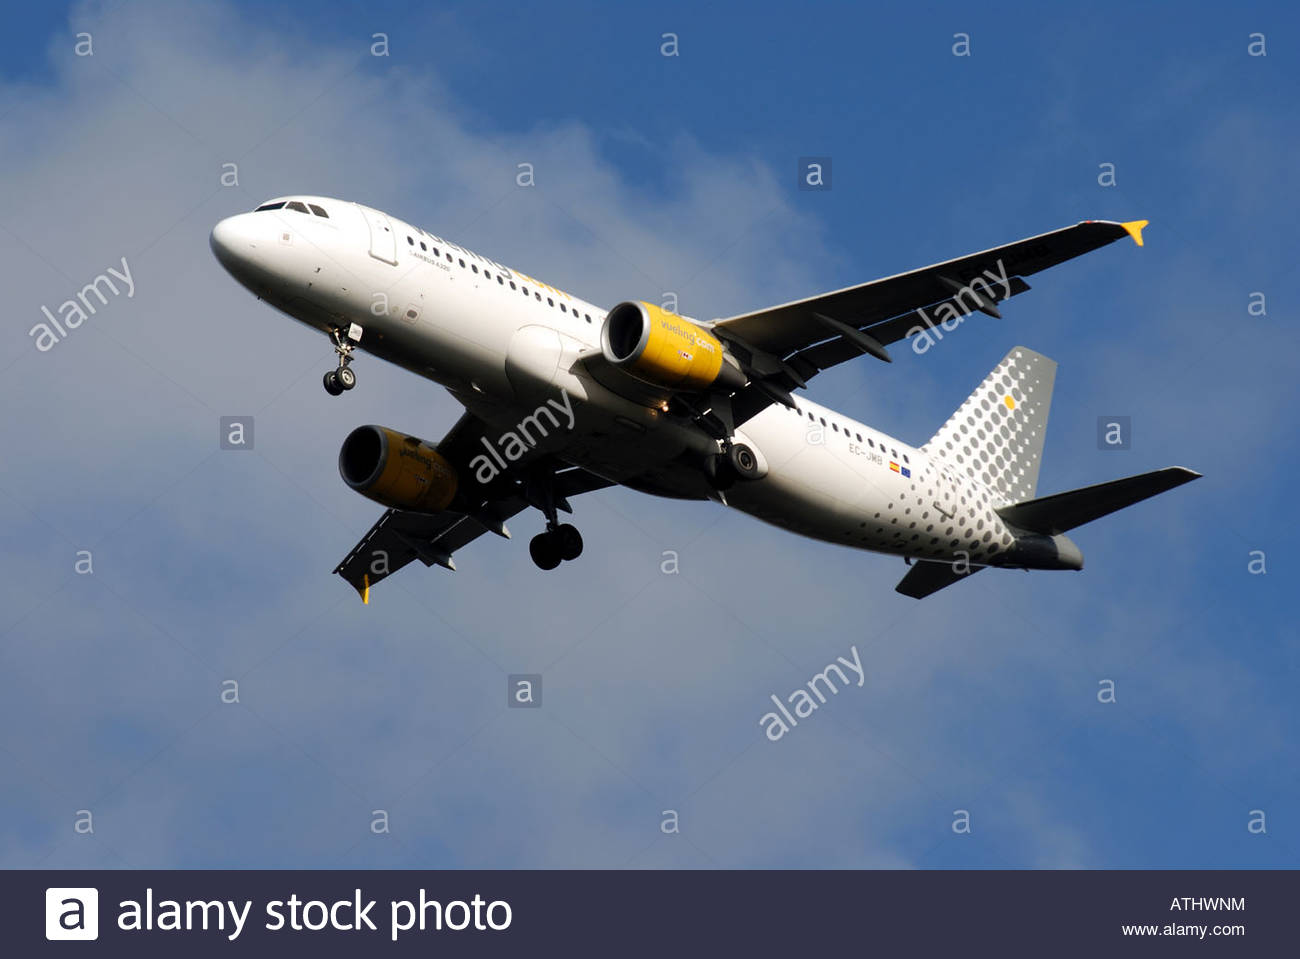 Vueling Airlines Airbus A320 EC-JMB - Stock Image